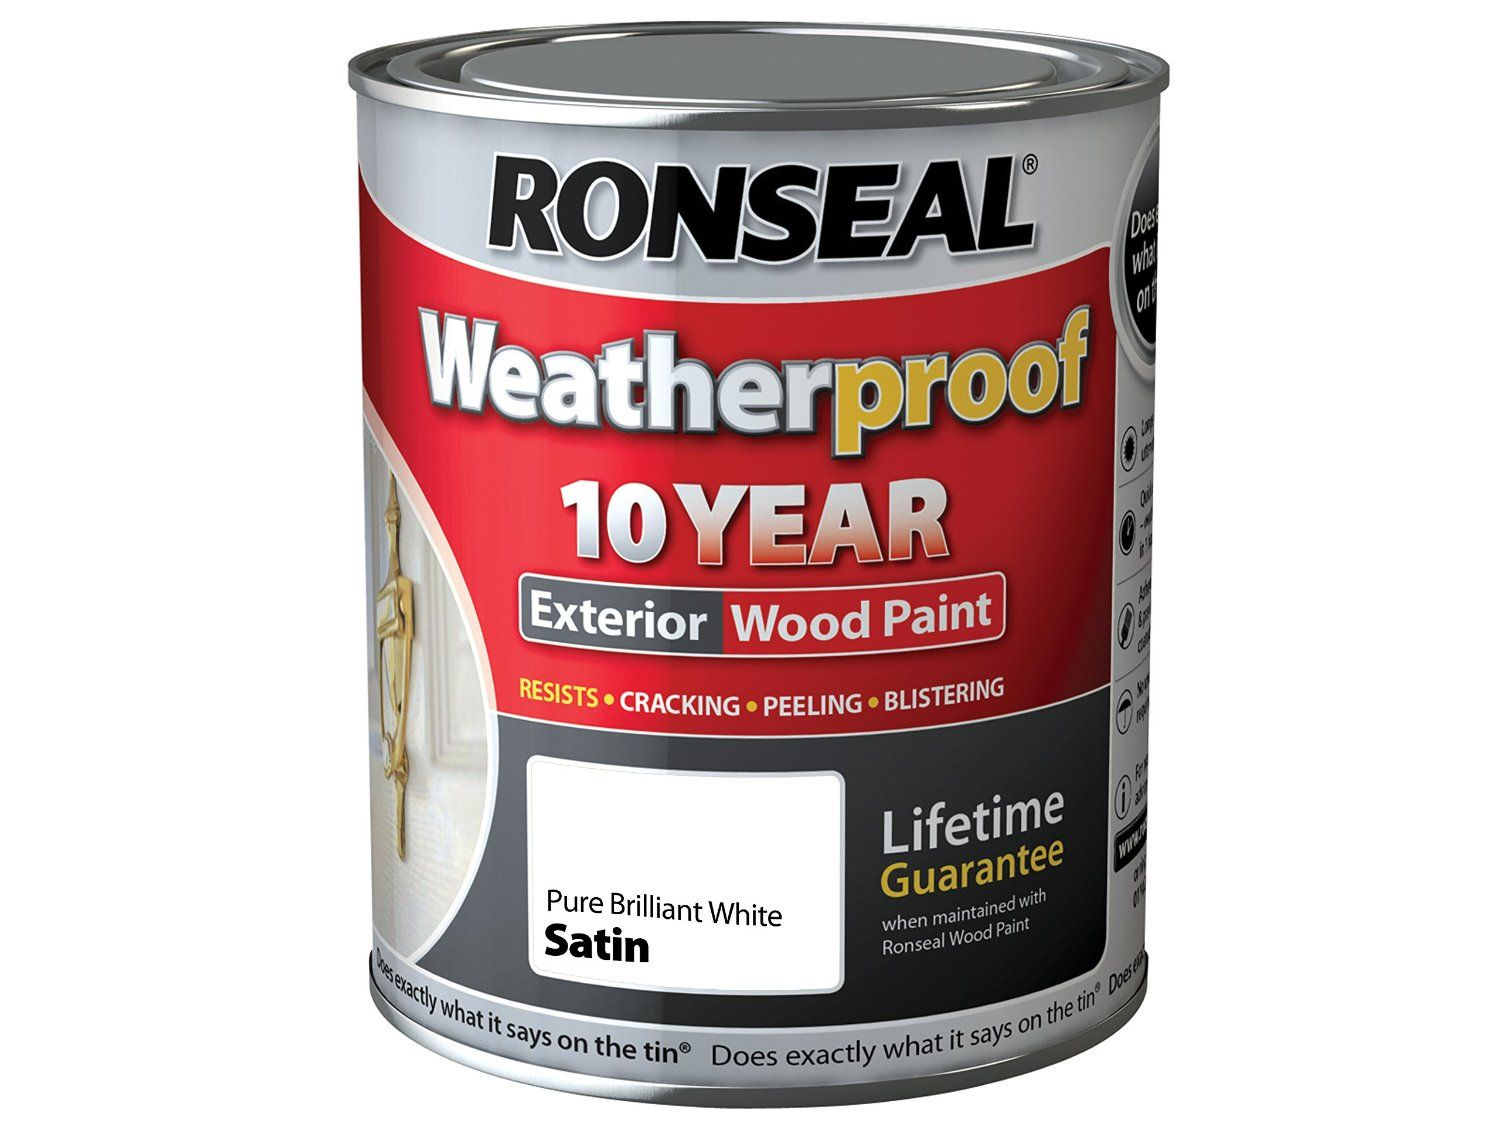 Ronseal Rslwppbws750 750 Ml Weatherproof Exterior Wood Paint Brilliant White Satin